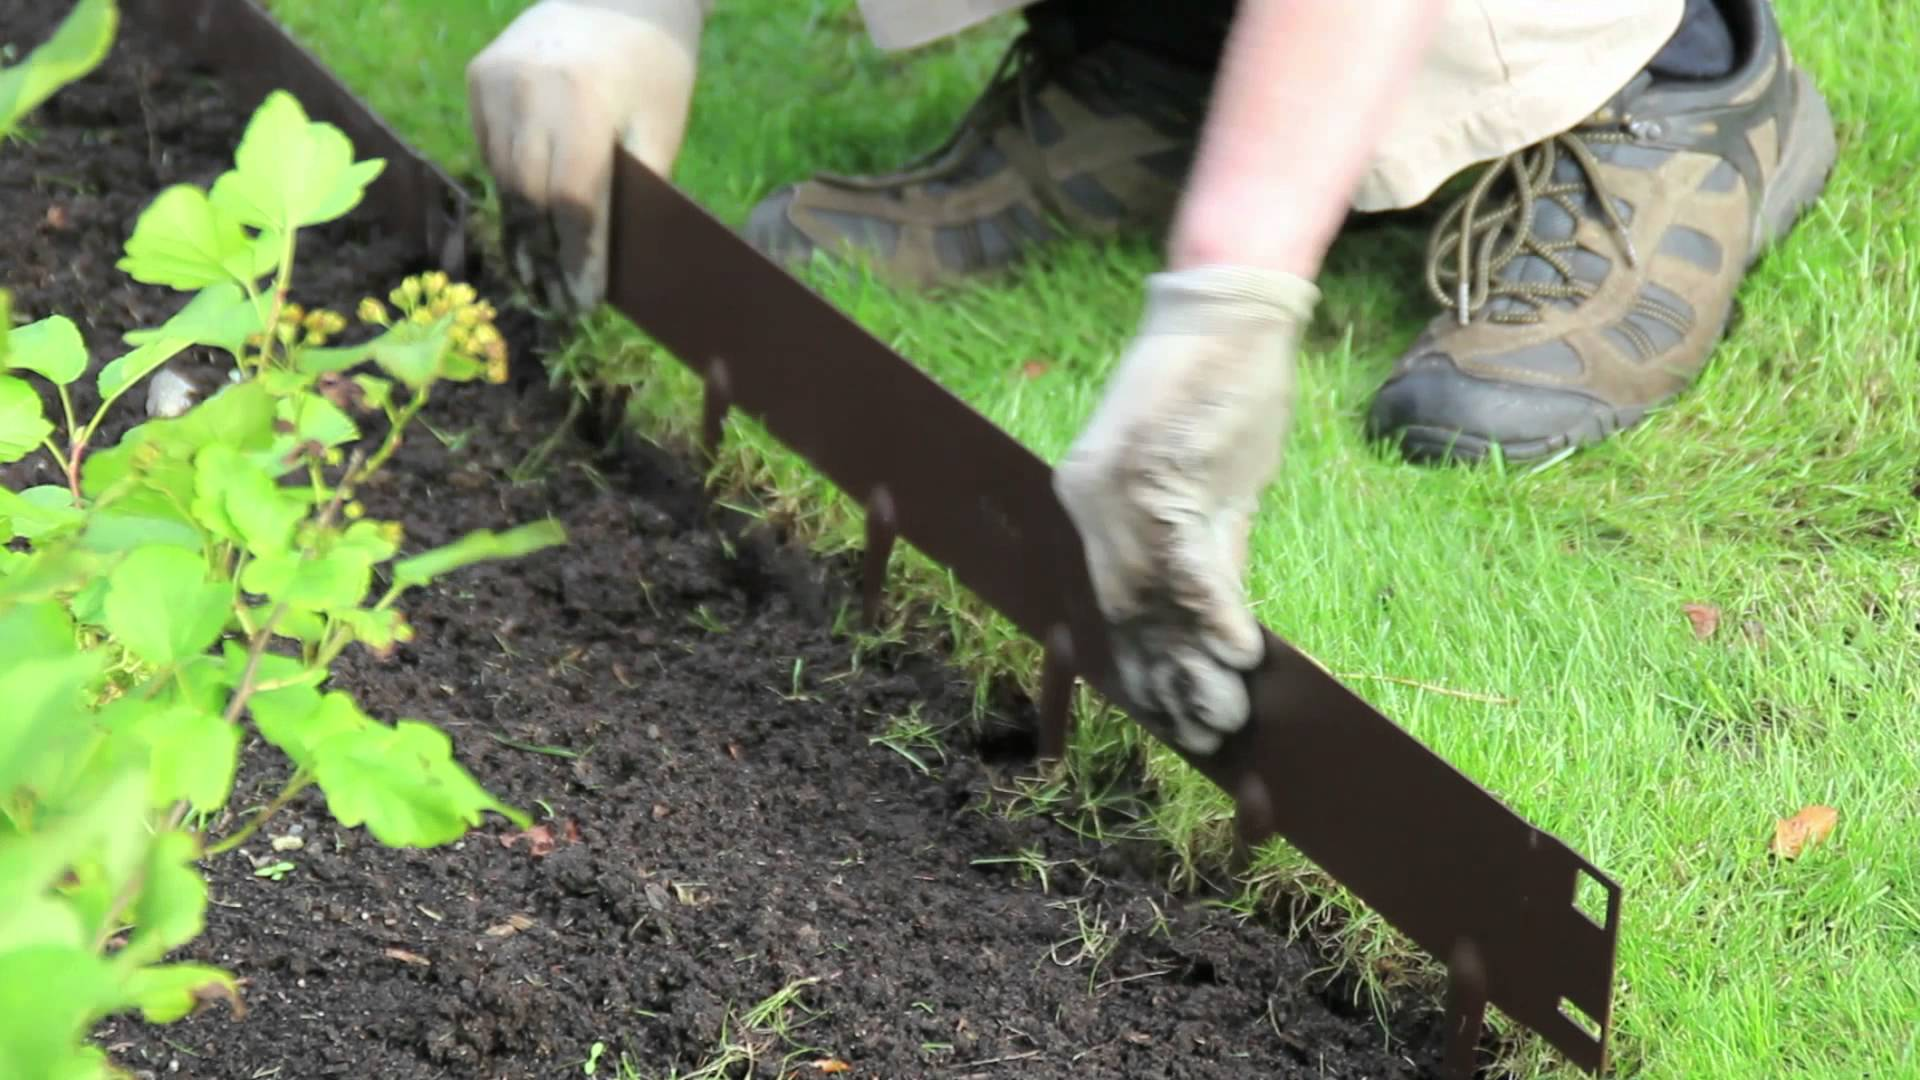 How to Install Metal Landscape Edging | Metal Landscape Edging | Landscape Edging Options